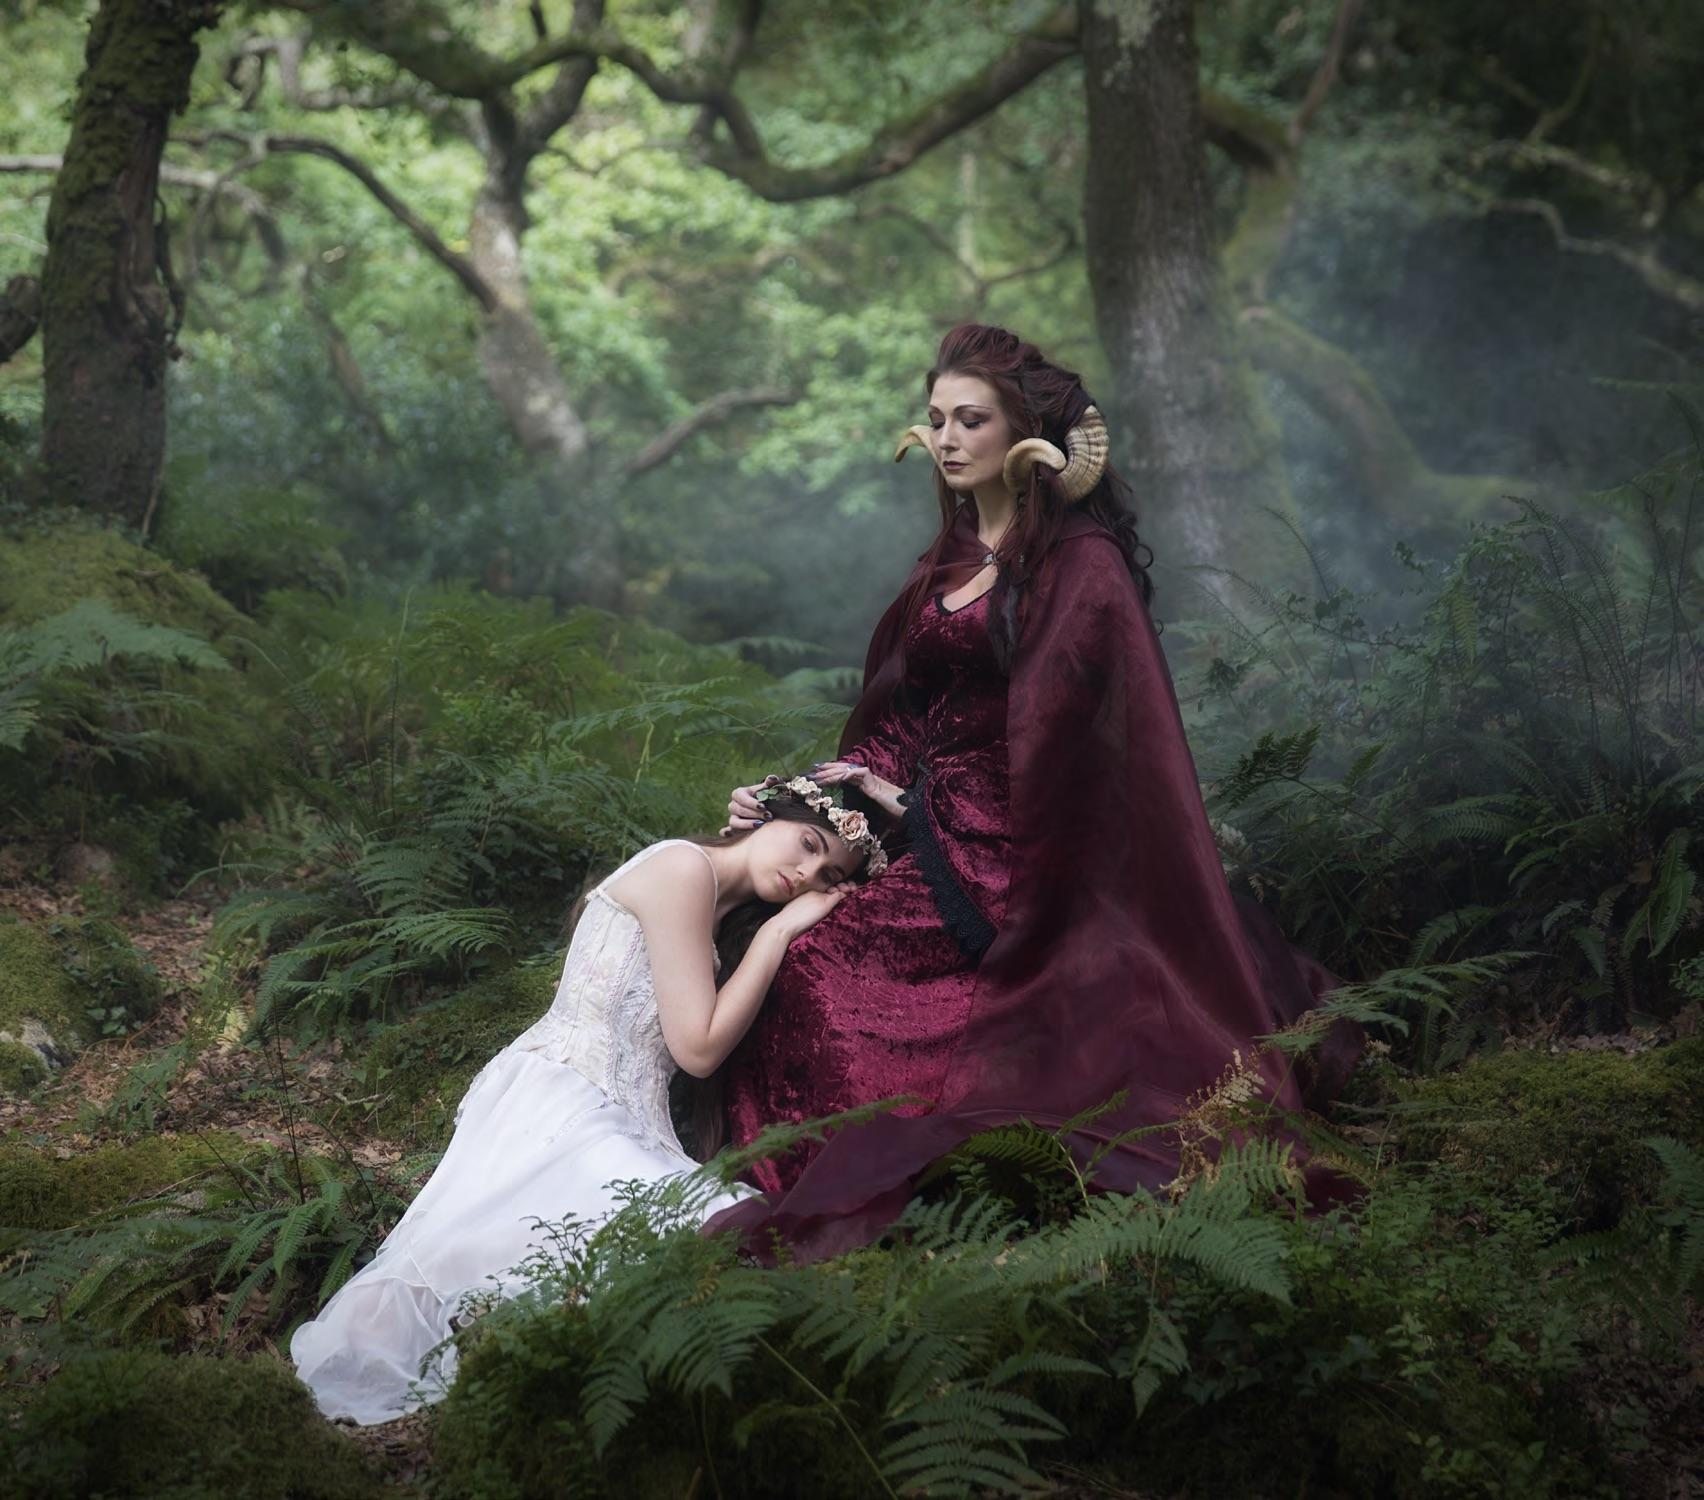 Enchanted Living Magazine, Photographer/Costumes: Carri Angel Photography Second Photographer: Ange Harper Models: Ian Hencher, Sorcha Verey, The Druidess Of Midian Headdress: Under the Ivy